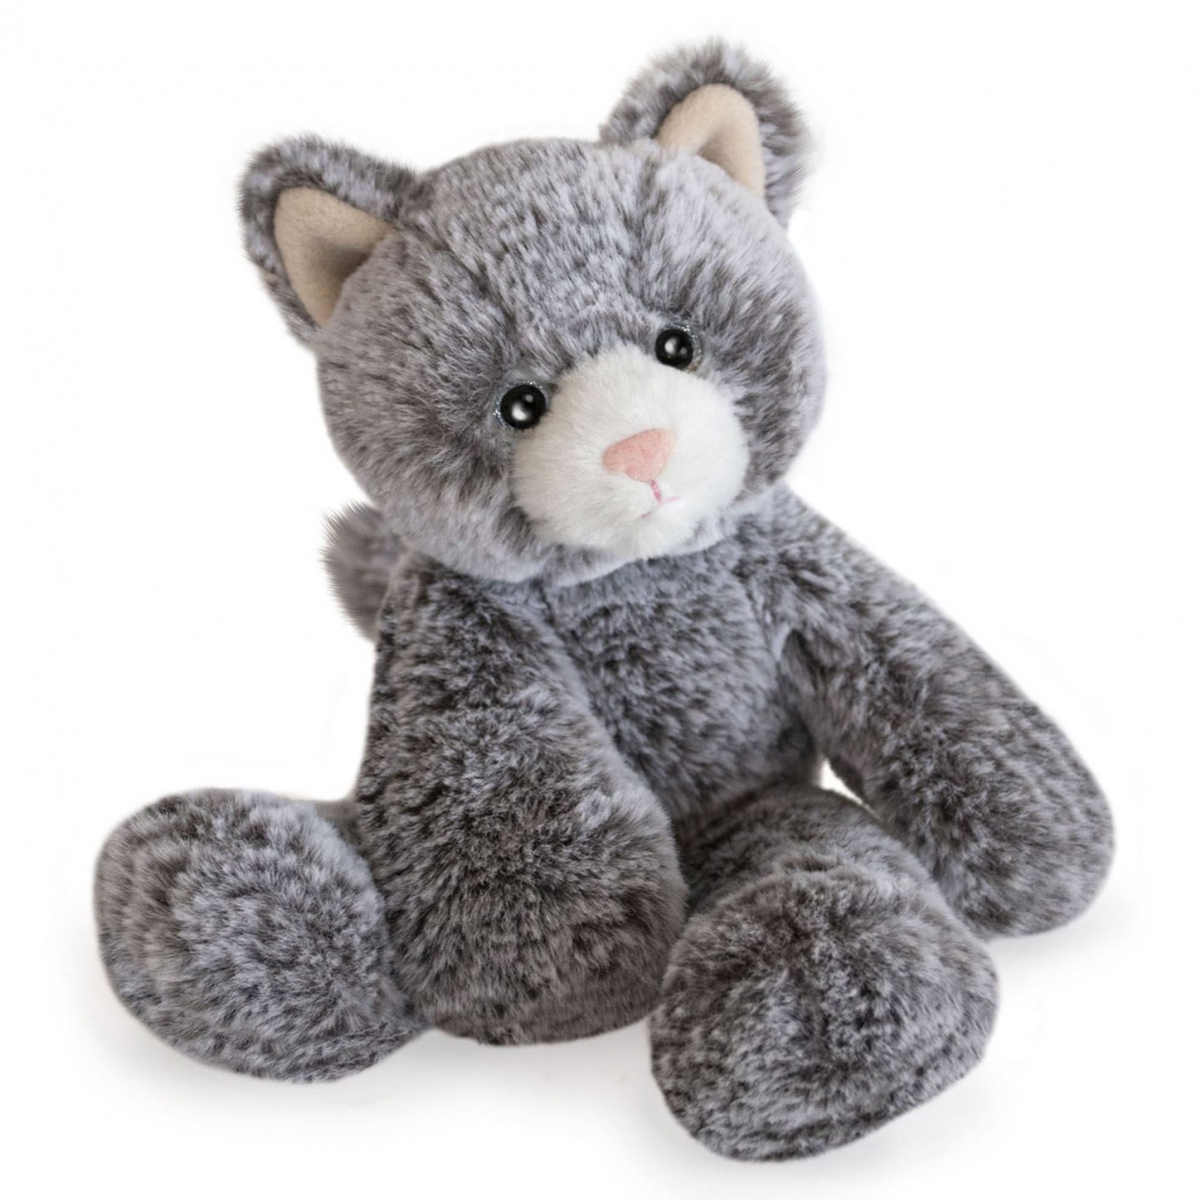 Peluche Peluche Sweety Mousse Chat - Moyen Peluche Chat Sweety Mousse 25 cm